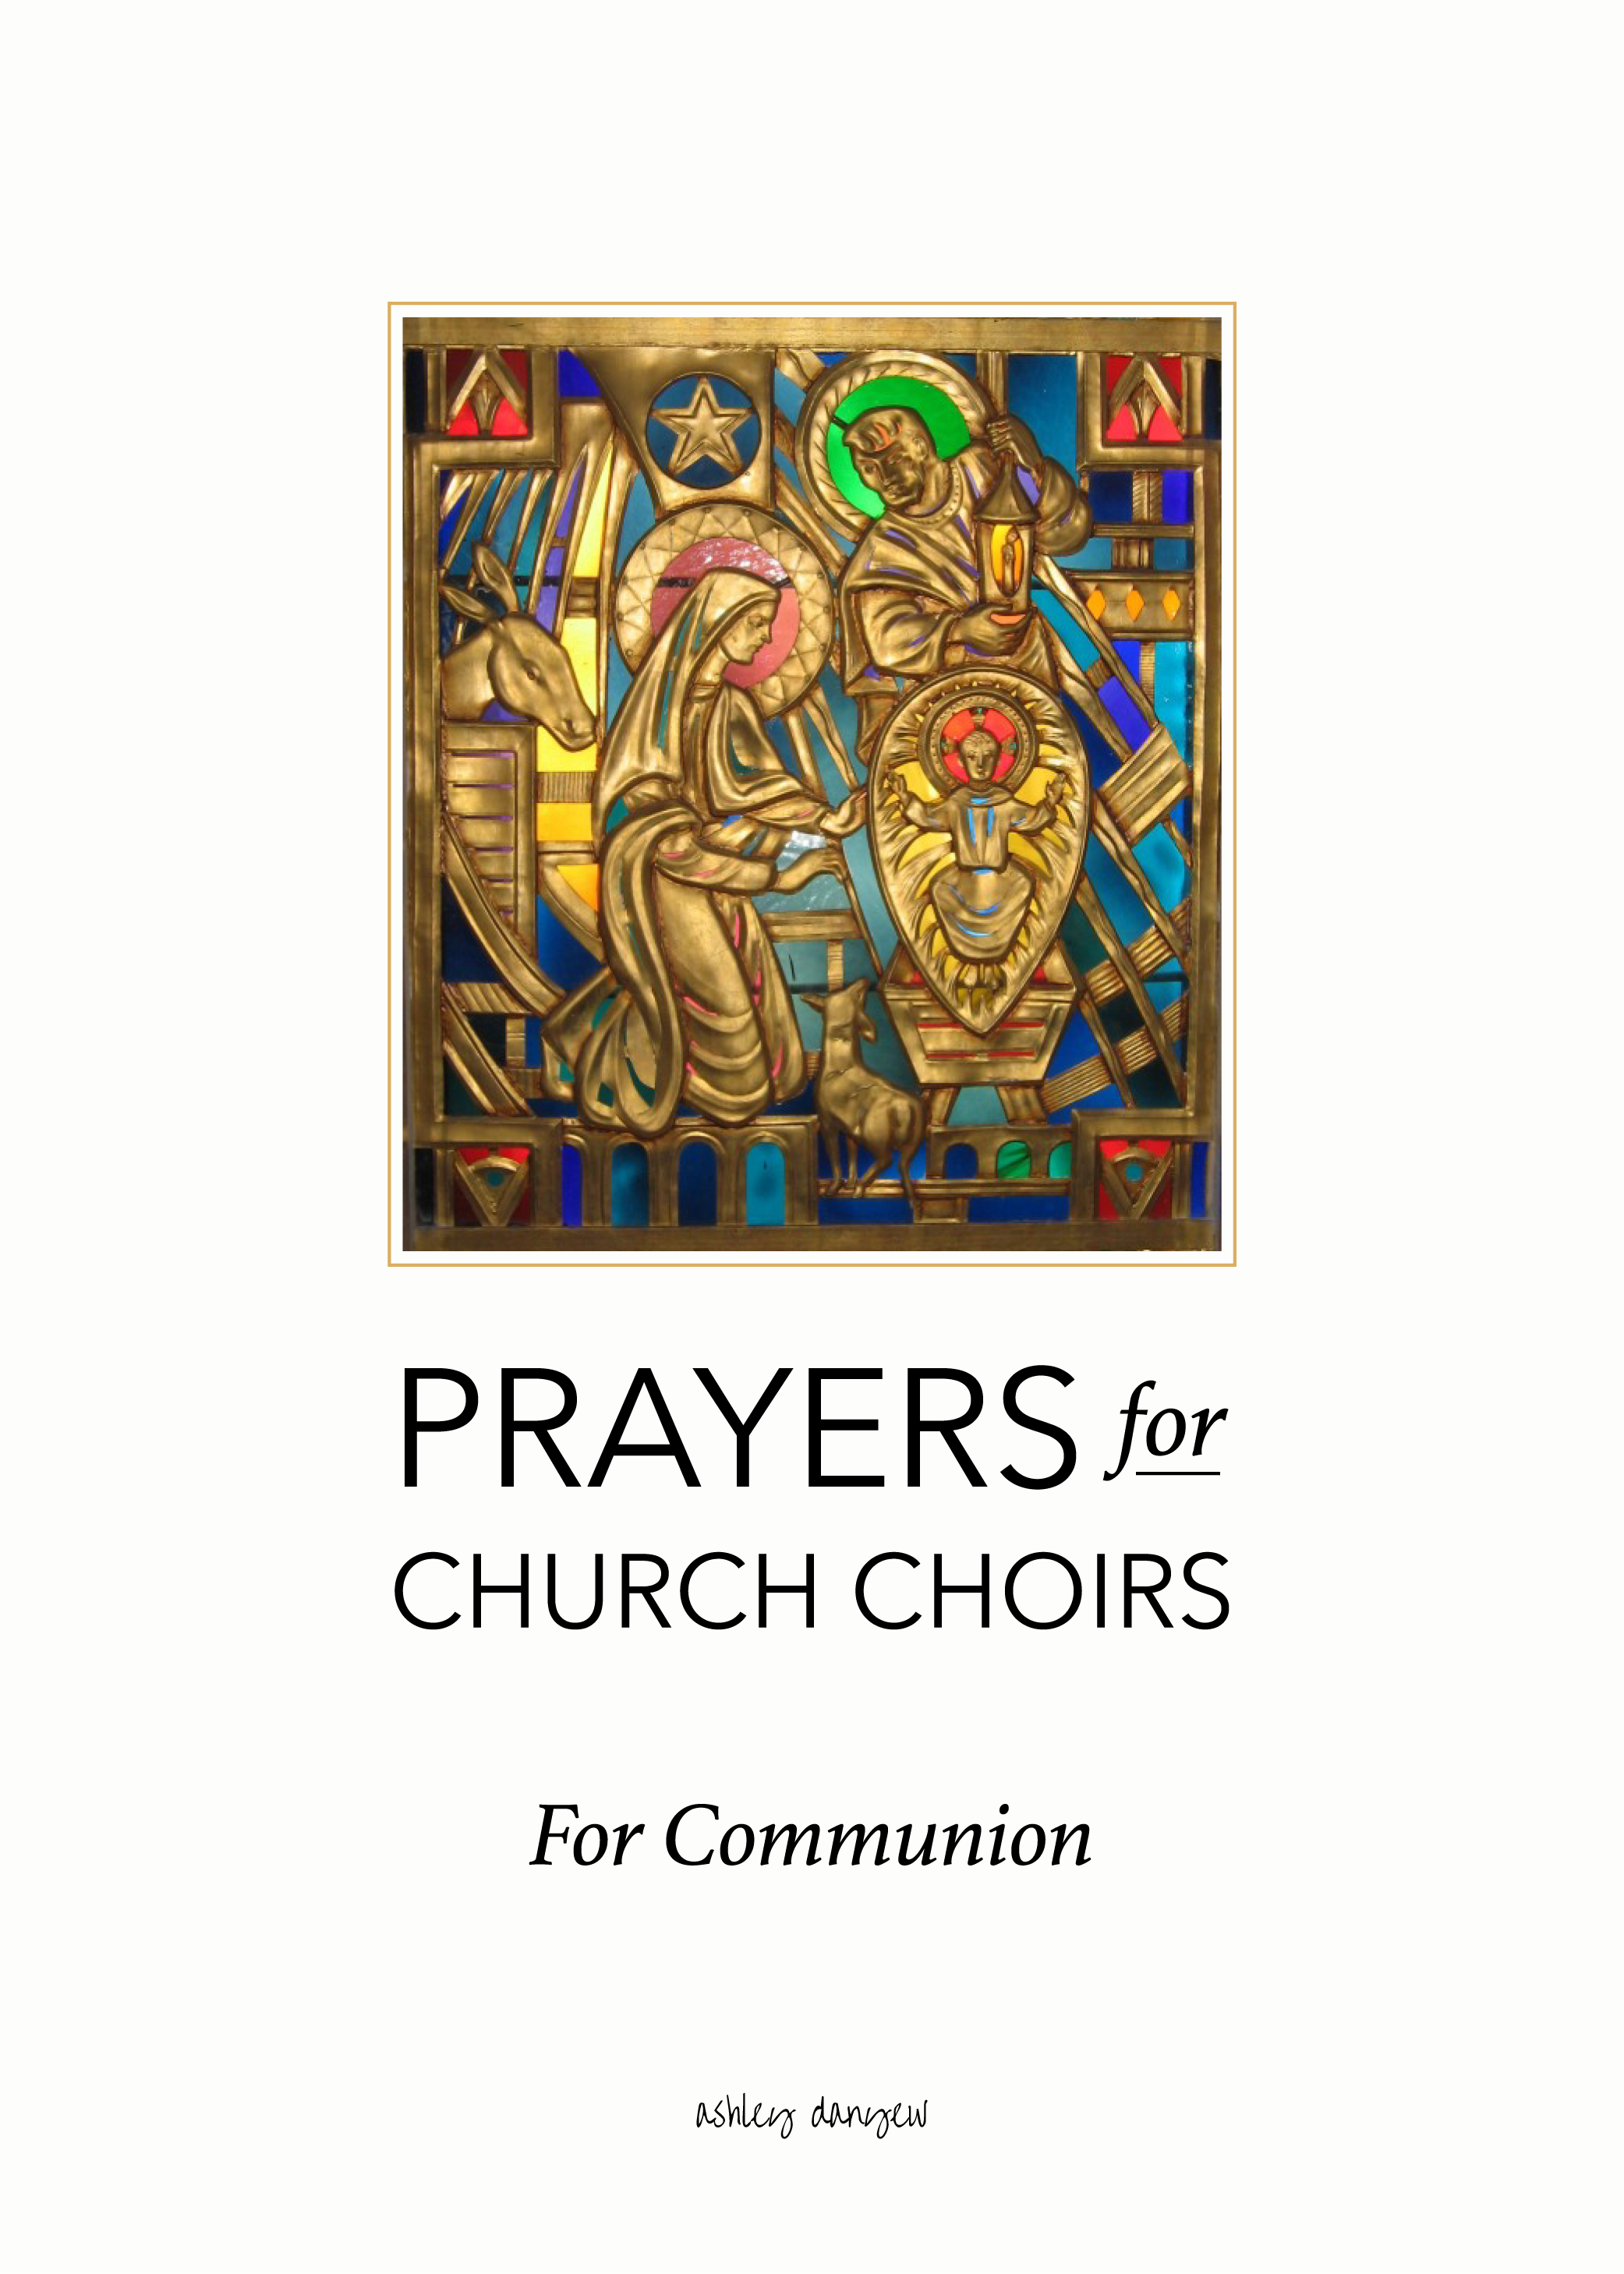 Prayers-for-Church-Choirs_Communion-06.png